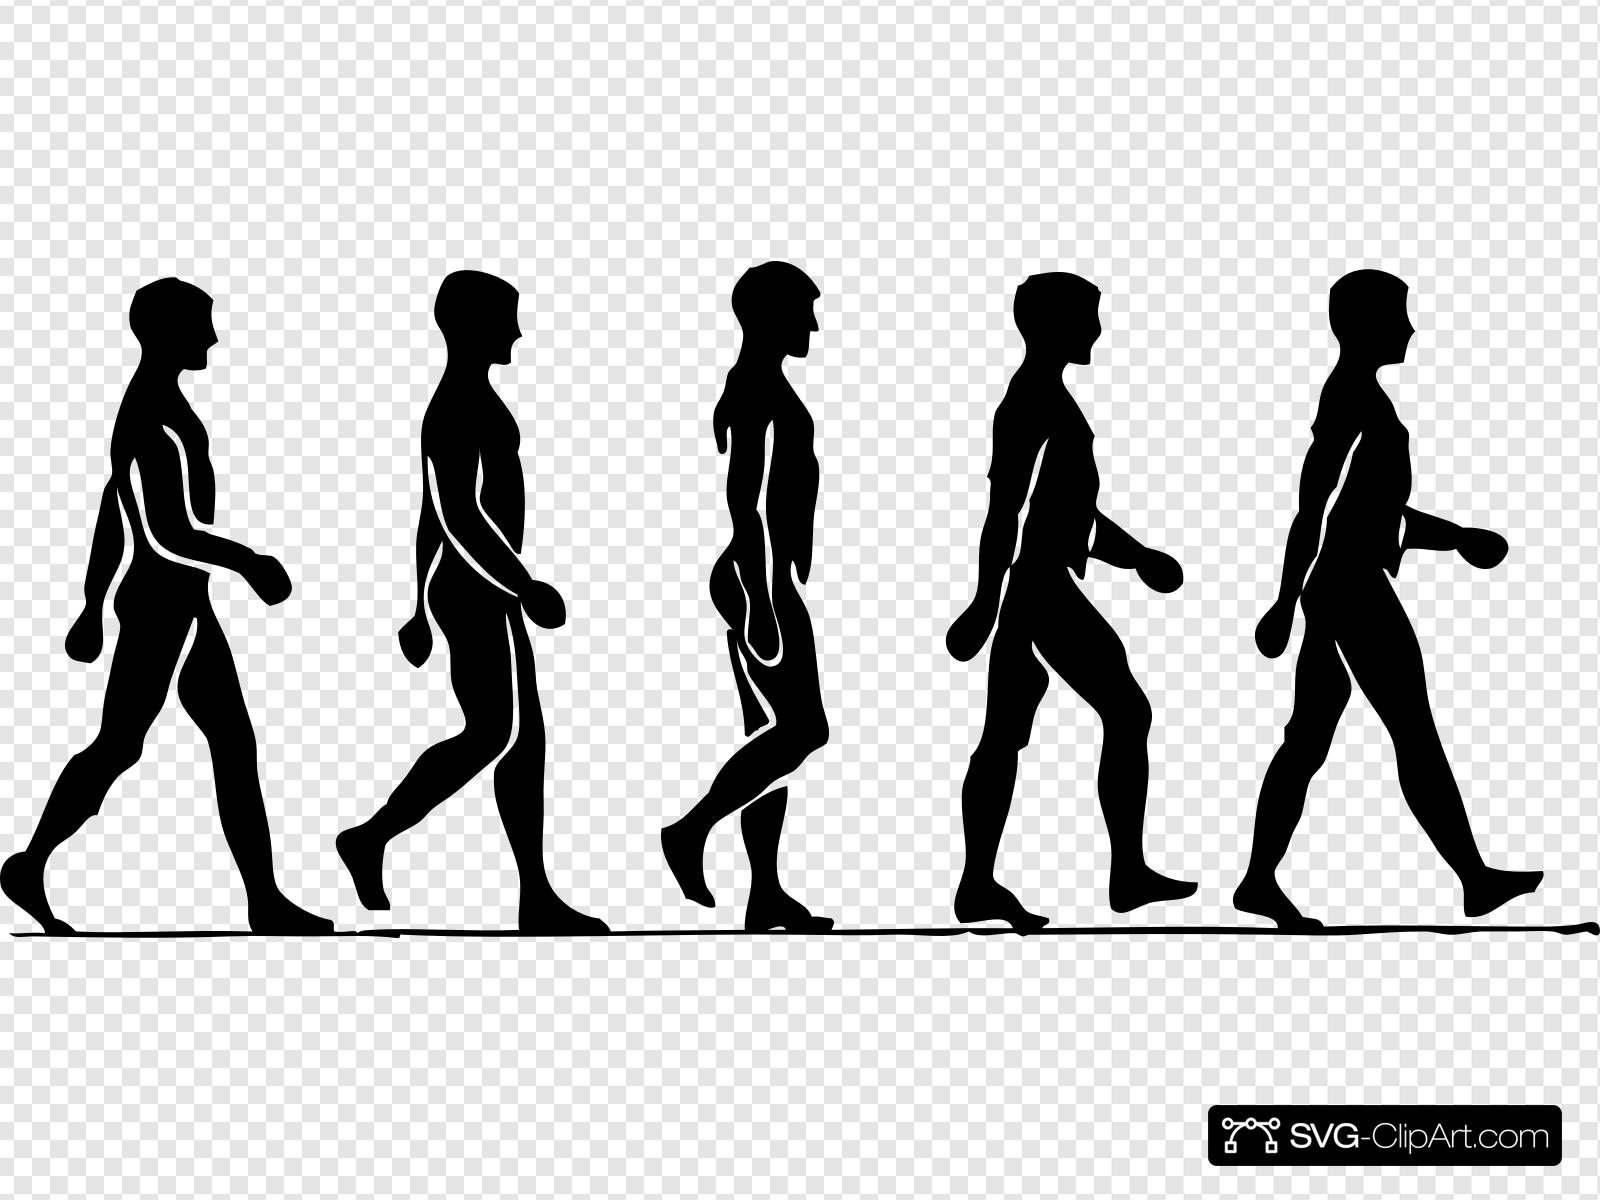 Walking man clipart image banner free library Walking Man Clip art, Icon and SVG - SVG Clipart banner free library